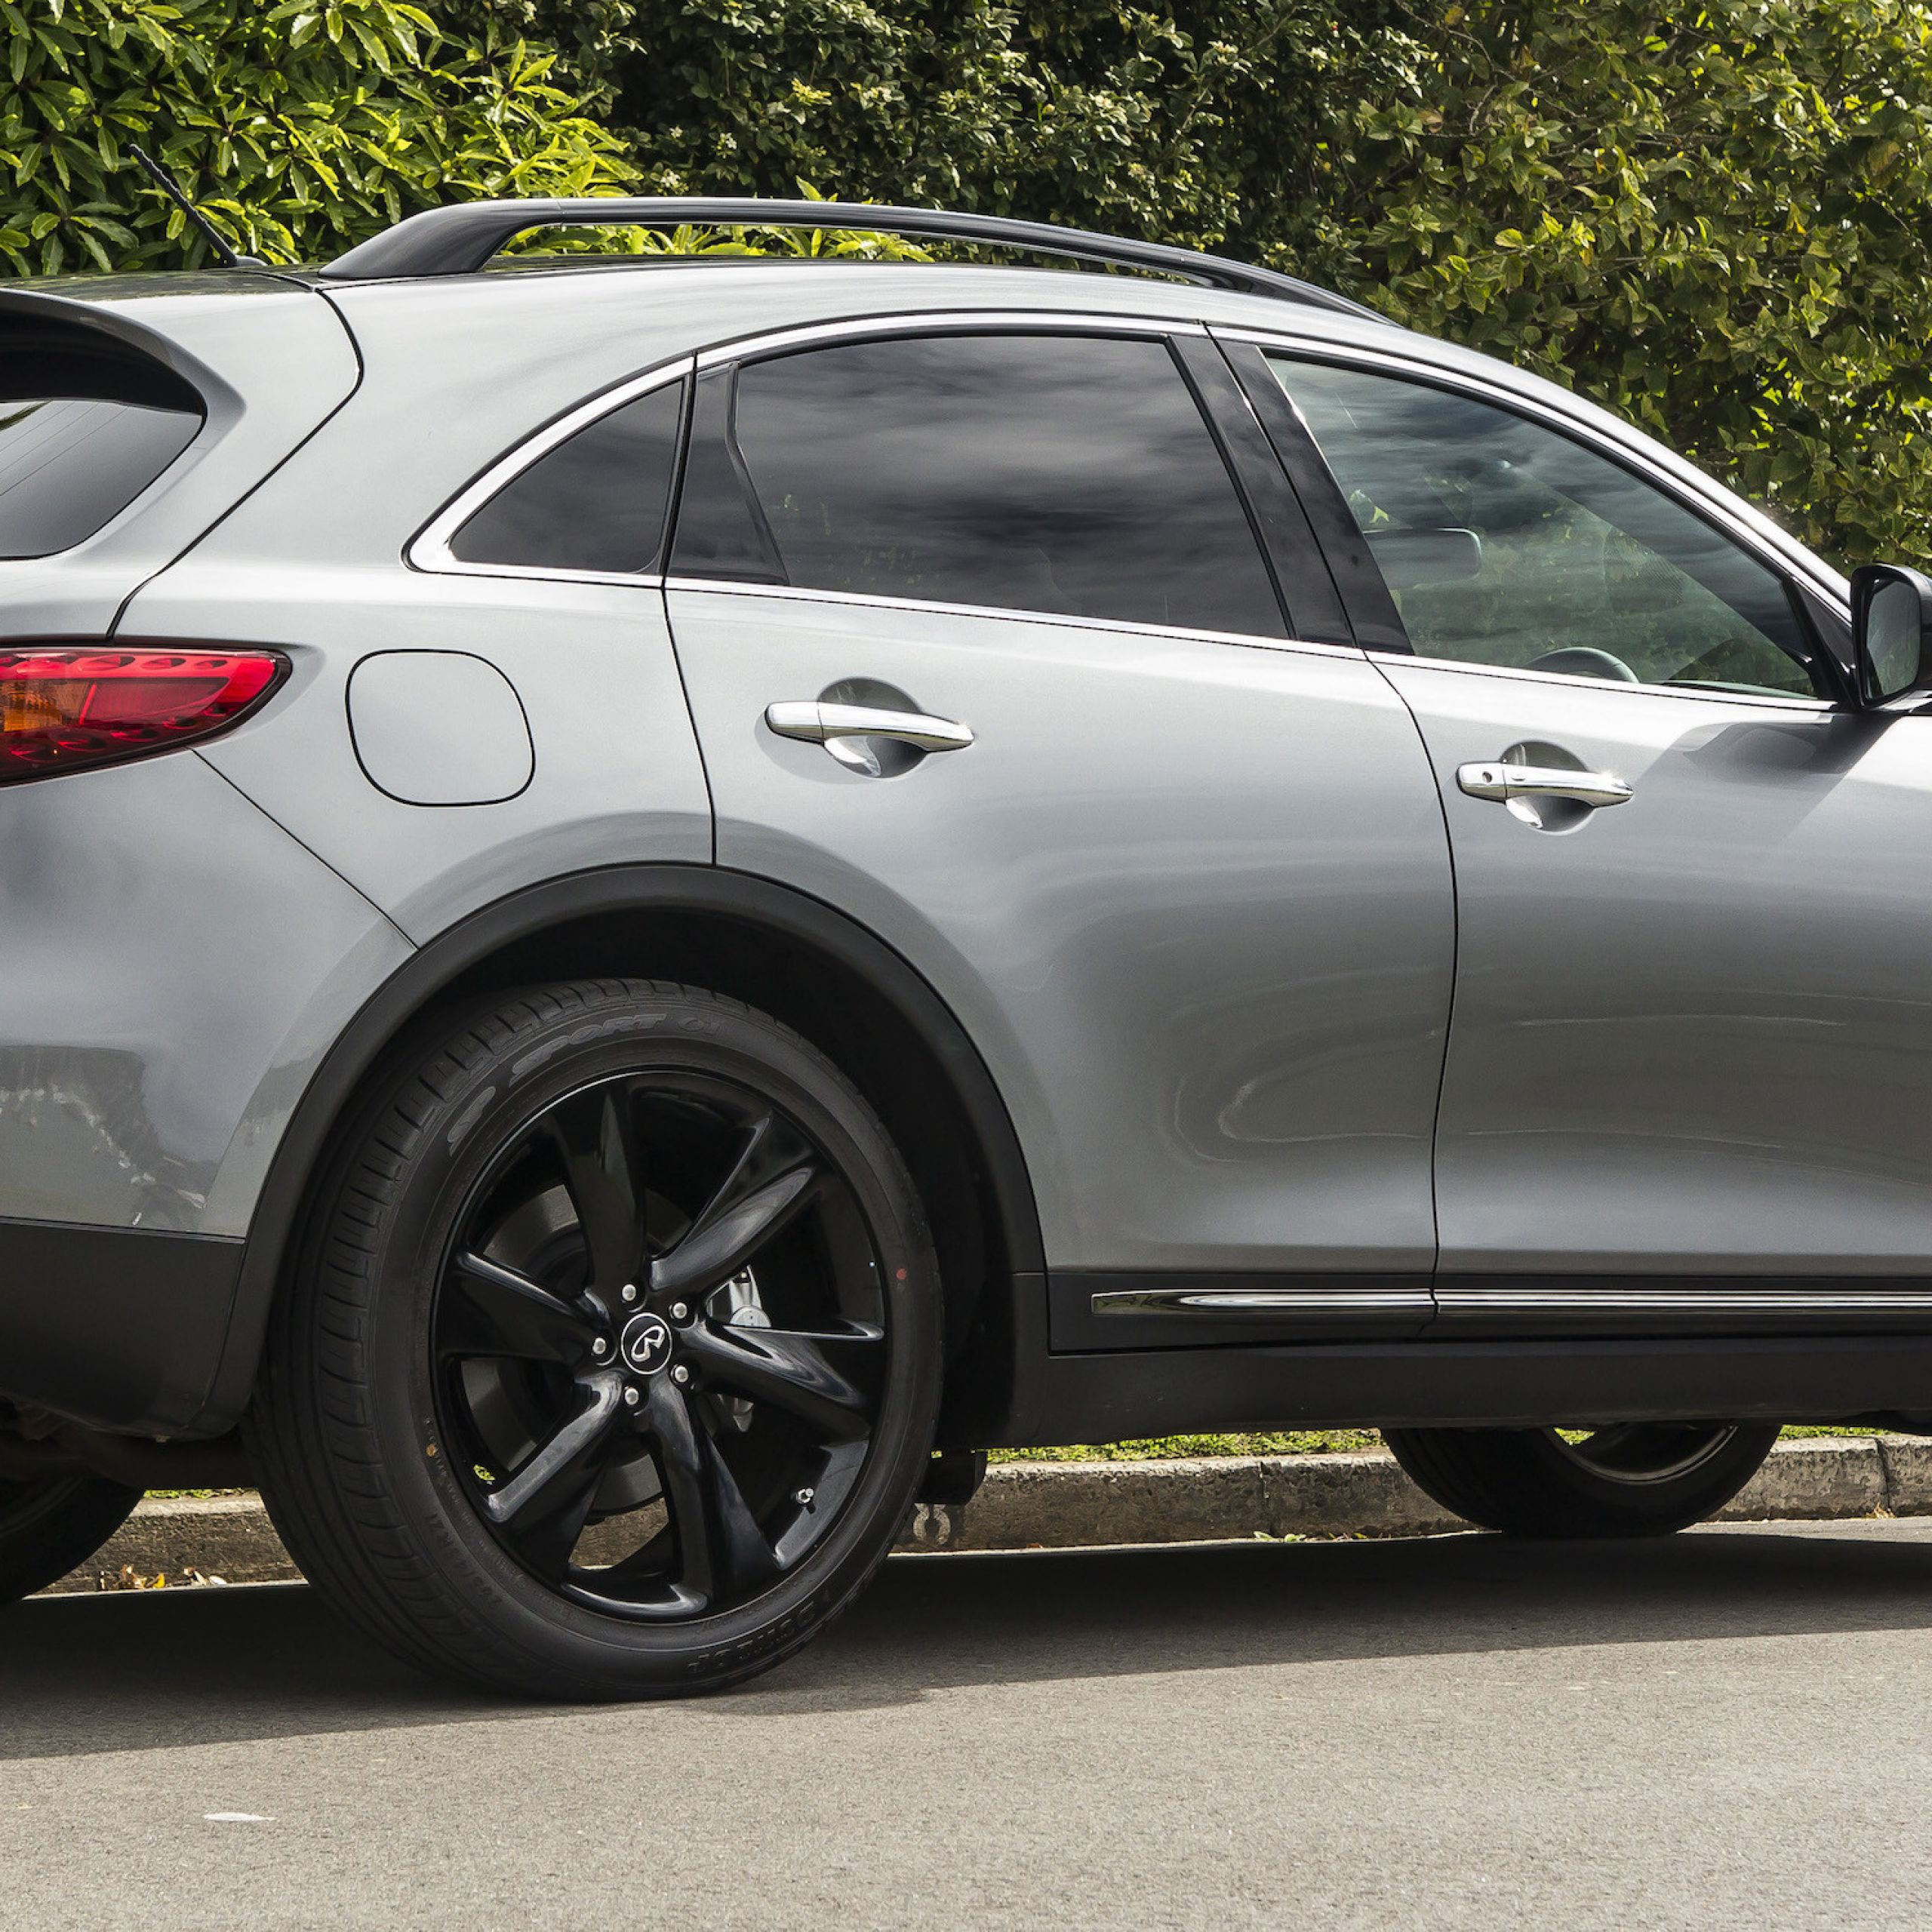 infiniti qx70 2020 best of infiniti qx70 3 0d sel to be dumped by end of 2016 collection of infiniti qx70 2020